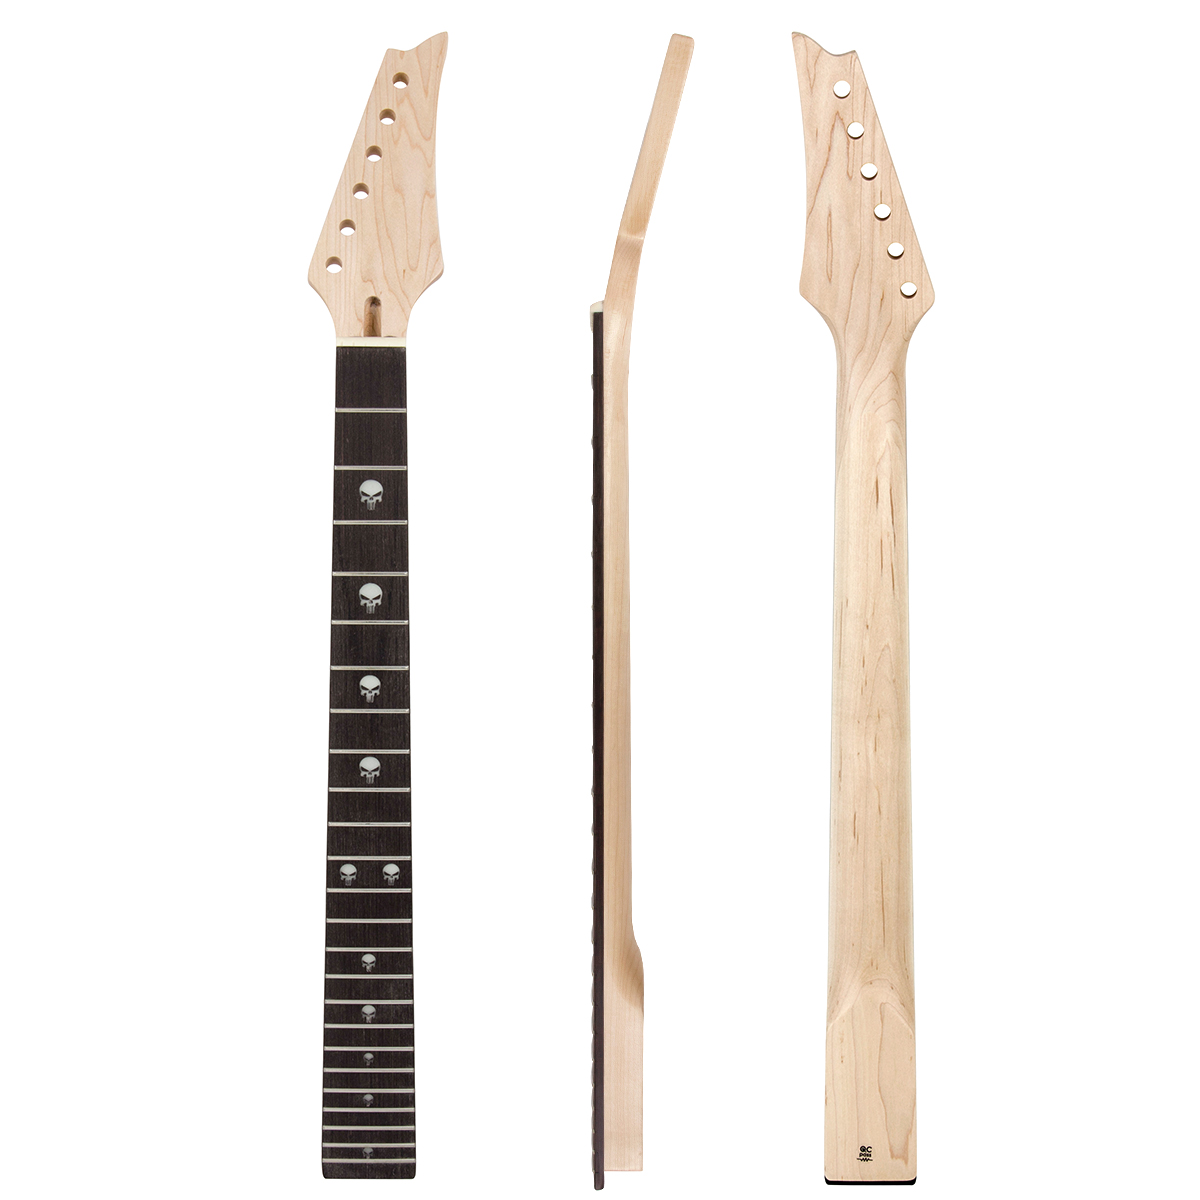 Kmise Electric Guitar Neck Canada Maple 24 Large Frets Bolt On